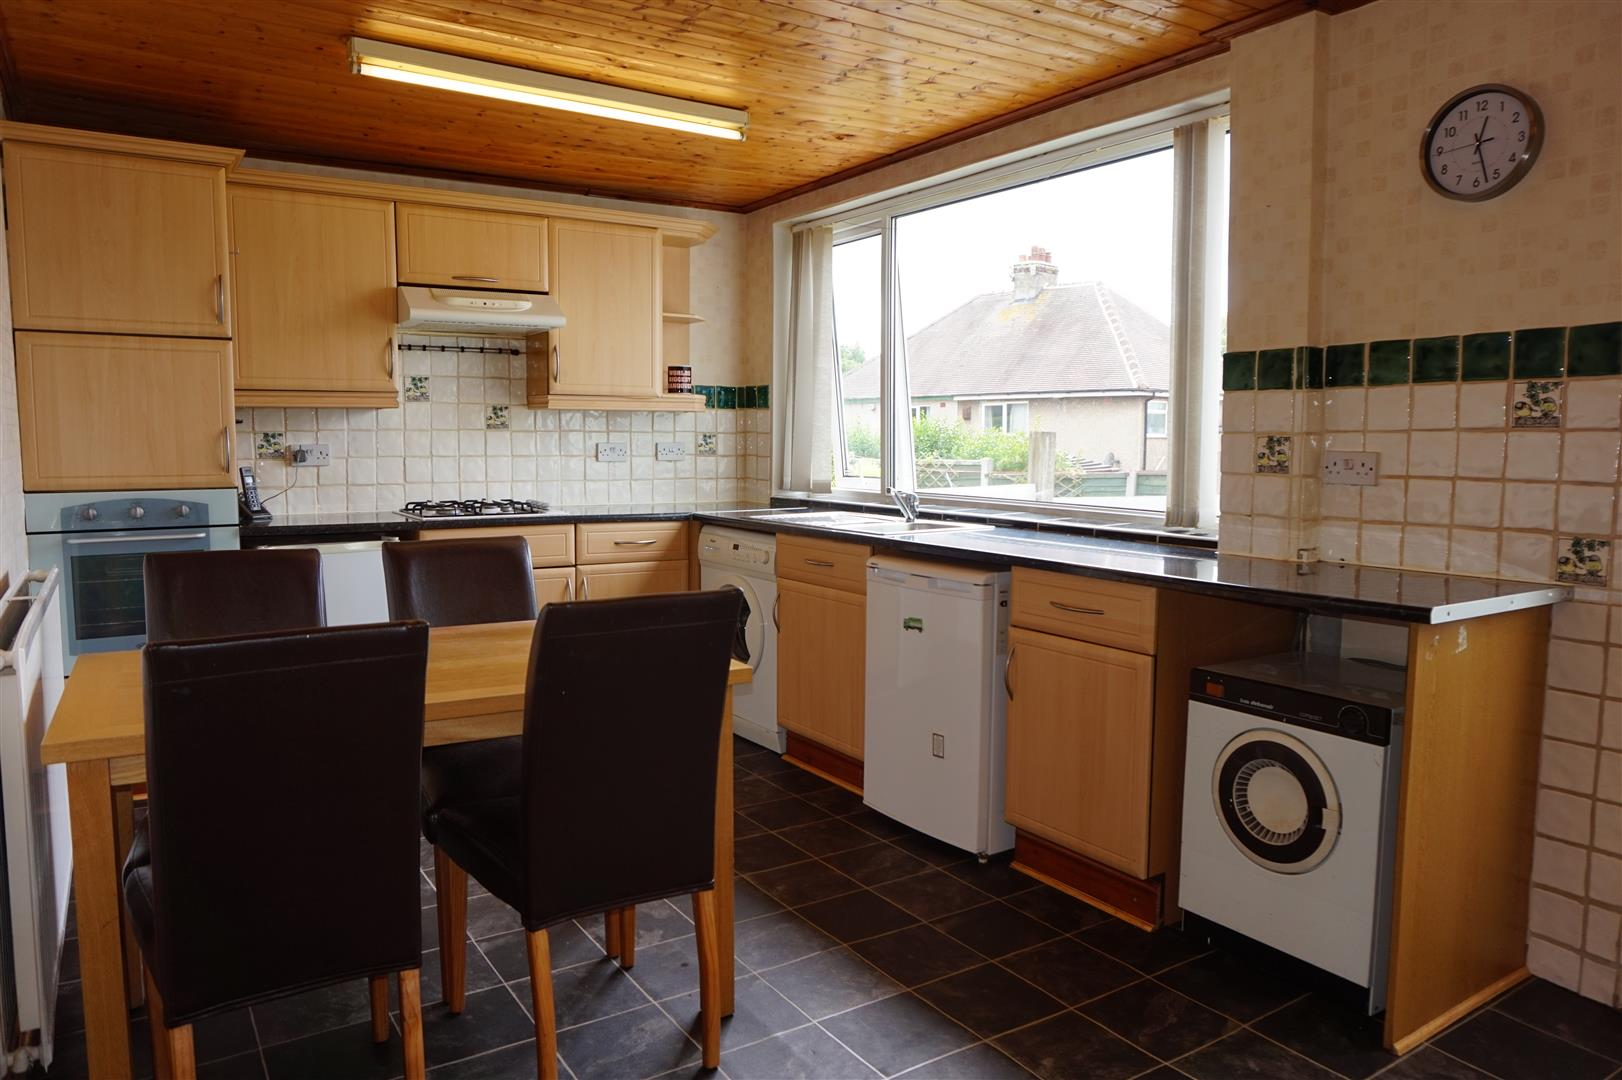 Summersgill road lancaster 3 bed type unknown la1 2rt for F kitchen lancaster